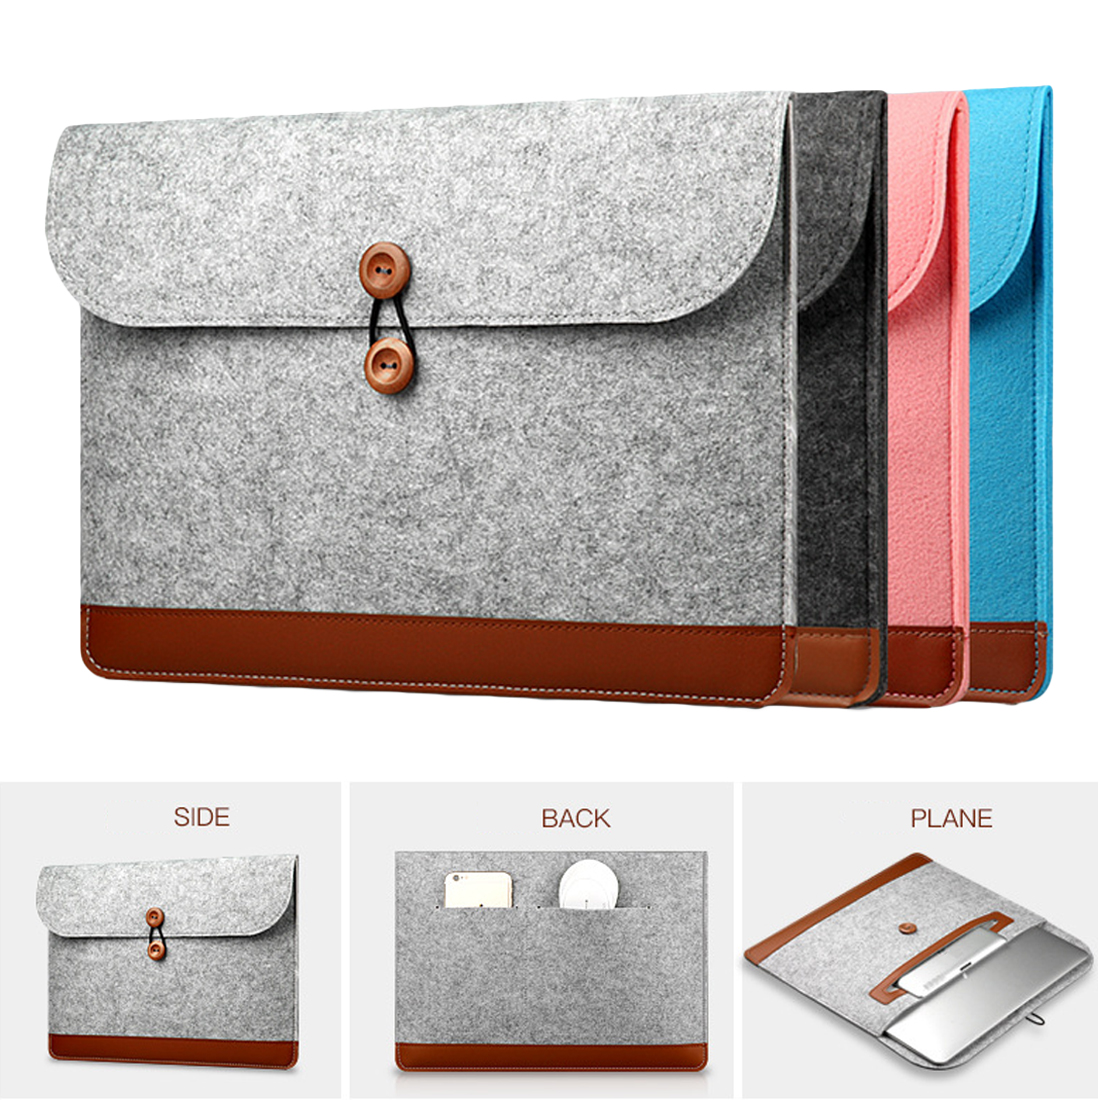 Centechia Nova Moda Macio Sleeve Case Bag Para Apple Macbook Air Pro Retina 11 12 13 15 Laptop Anti- sentiu Tampa do zero